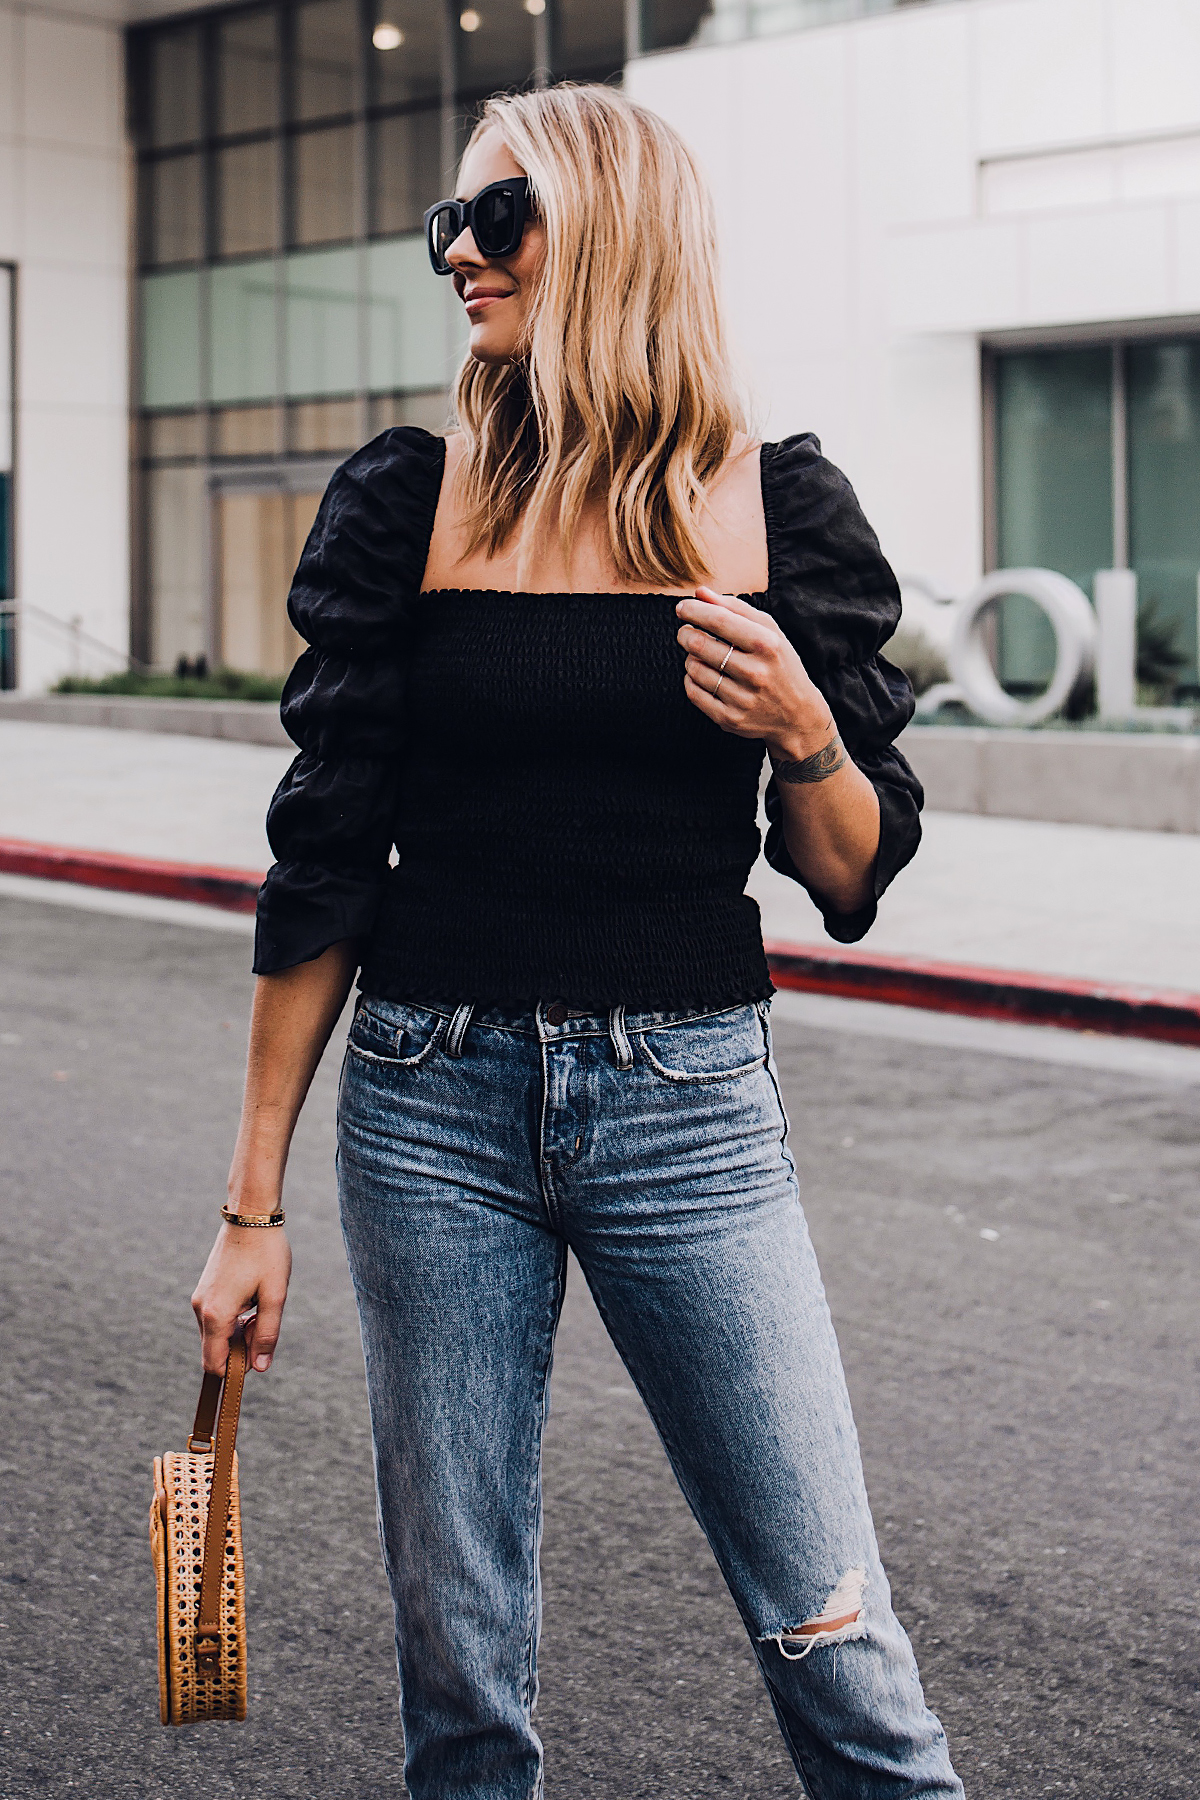 Blonde Woman Wearing Fashion Jackson Reformation Gala Top Black Ripped Jeans Cane Circle Straw Handbag Black Sunglasses Fashion Jackson San Diego Fashion Blogger Street Style